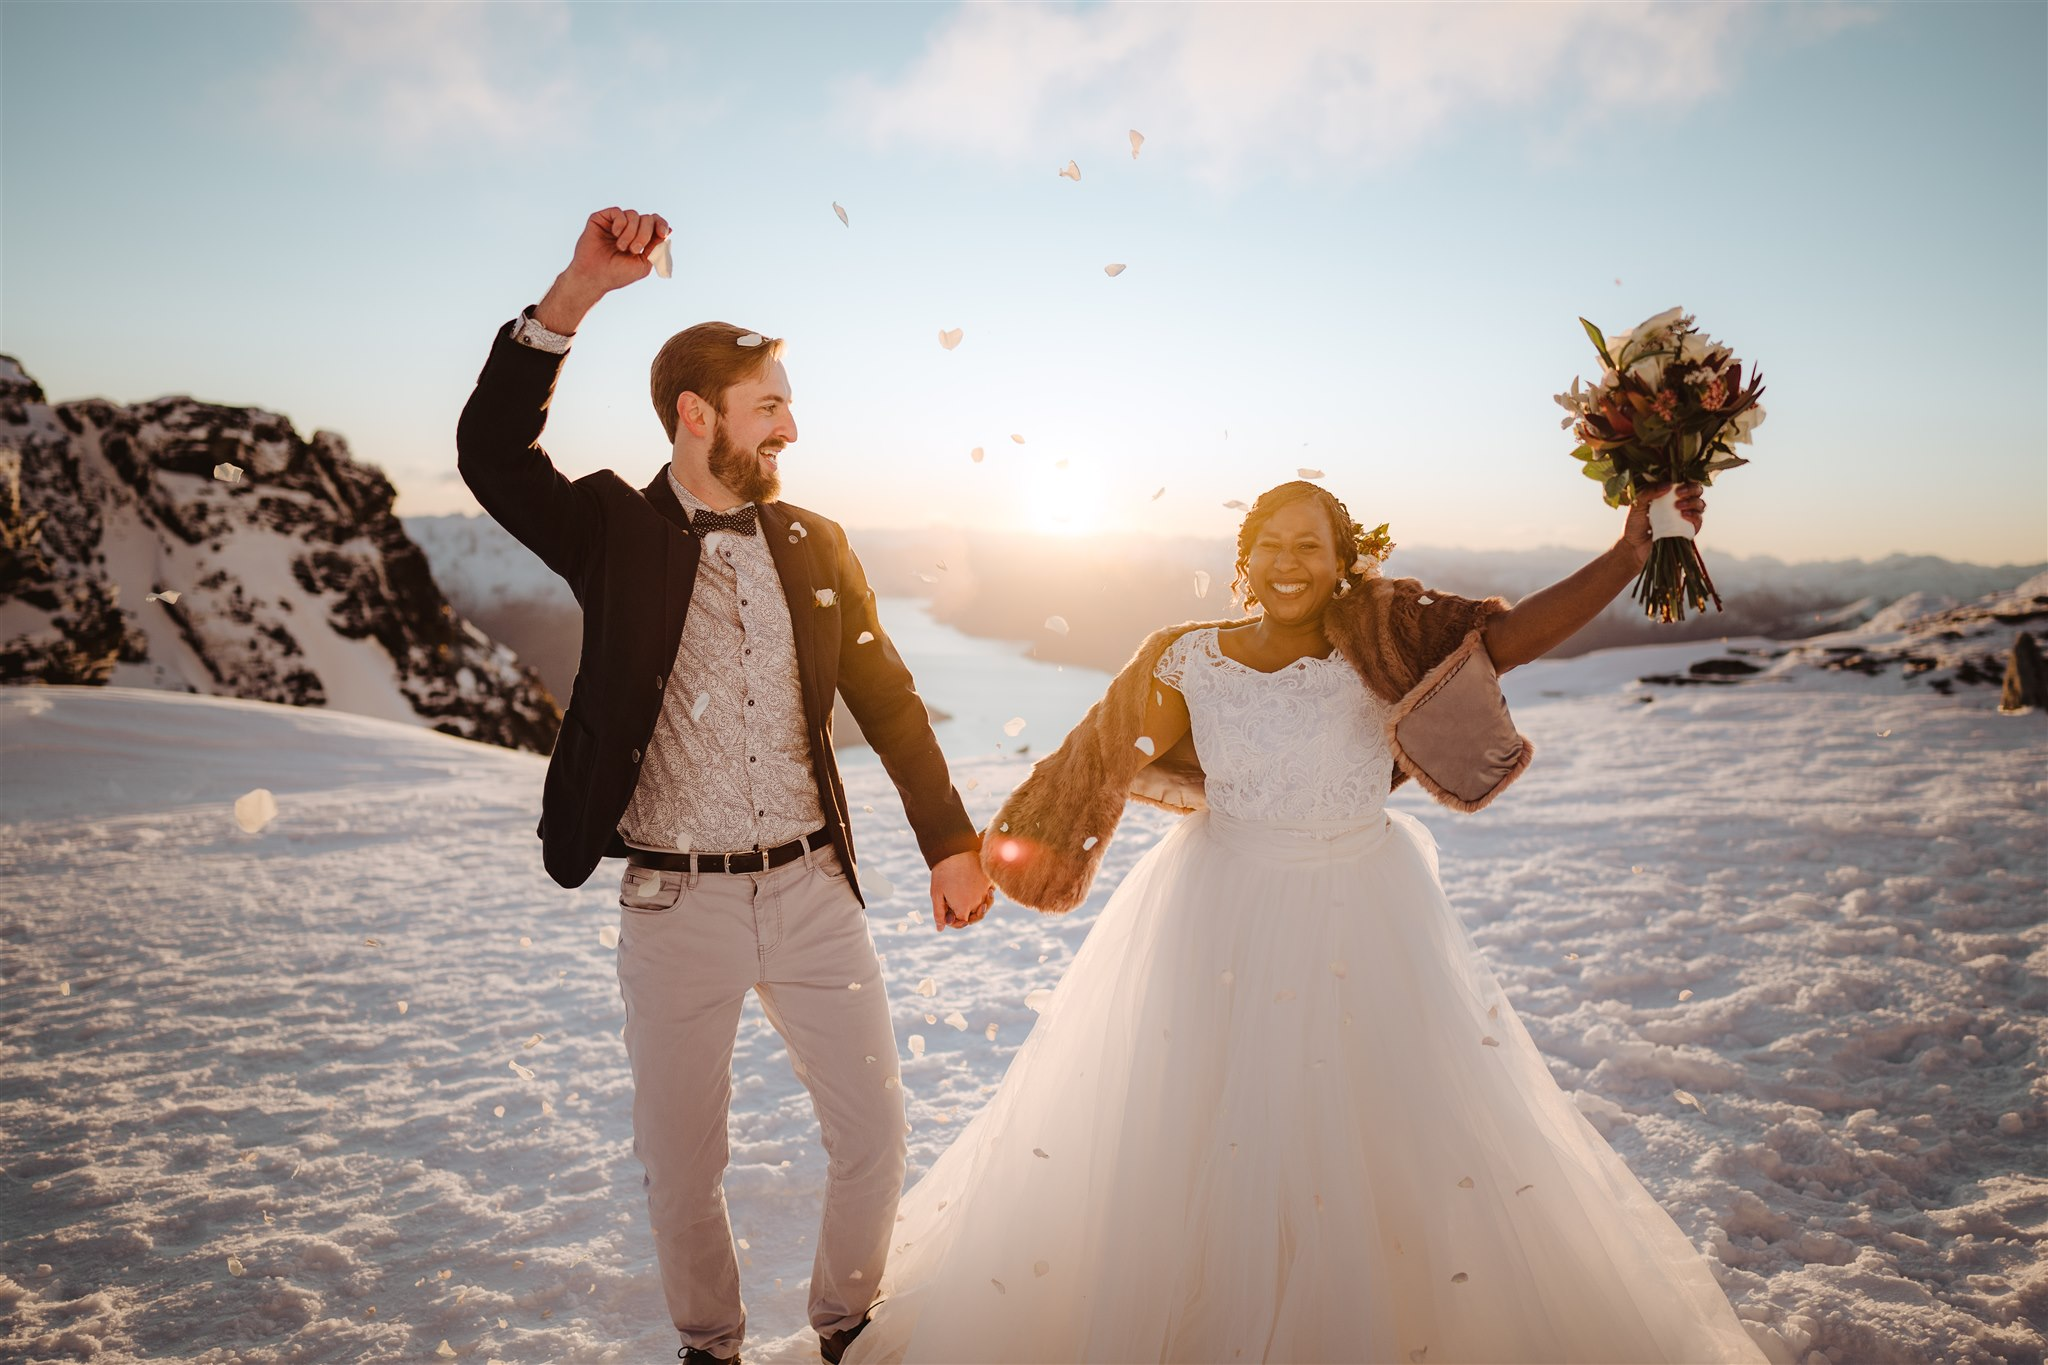 Bride and groom in wedding outfits on a mountain top in the snow celebrating their wedding with confetti and punching the air with bouquet